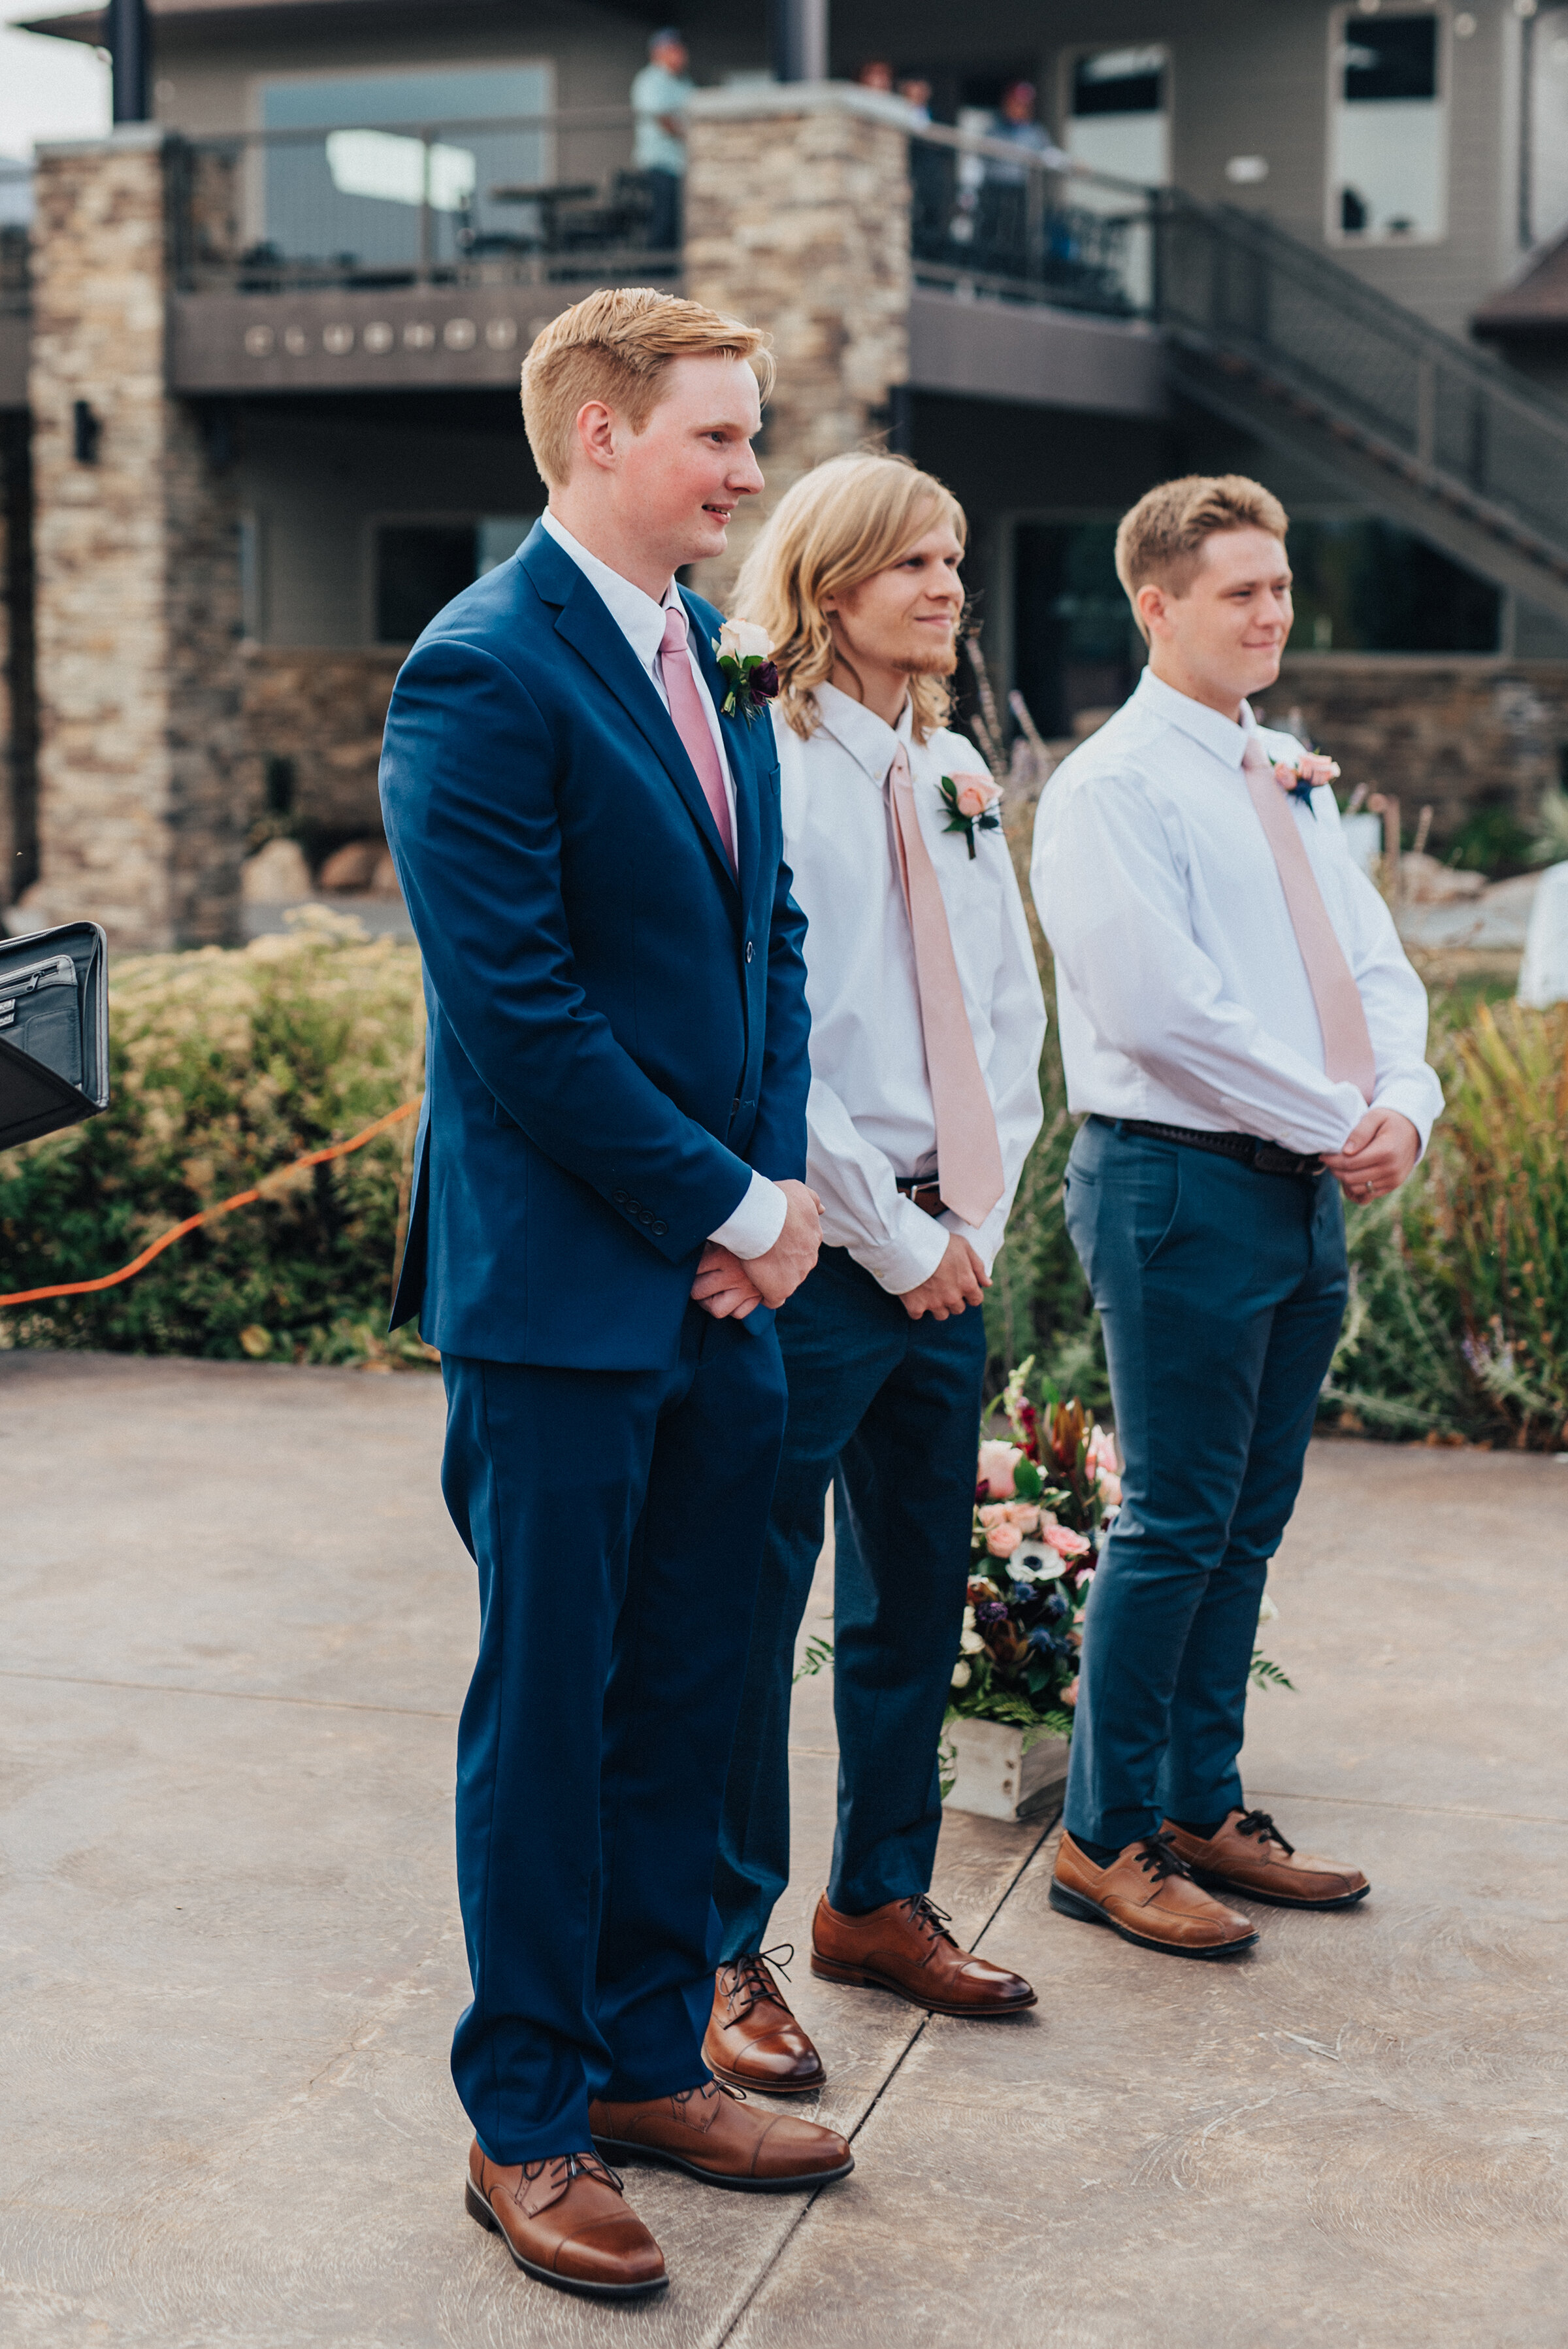 Handsome shot of the groom and groomsmen awaiting the ceremony in Logan, Utah captured by Kristi Alyse Photography. Groomsmen line wedding day blue suits pink tie wedding ceremony in northern Utah quality moments photography grooms boutonnieres best man Utah wedding #weddinginspo #loganutah #brideandgroom #utahbride#utahweddingphotographer #meaningfulmoment #weddingphotography #northernutahwedding #weddinghairstyles #weddingday #bridals